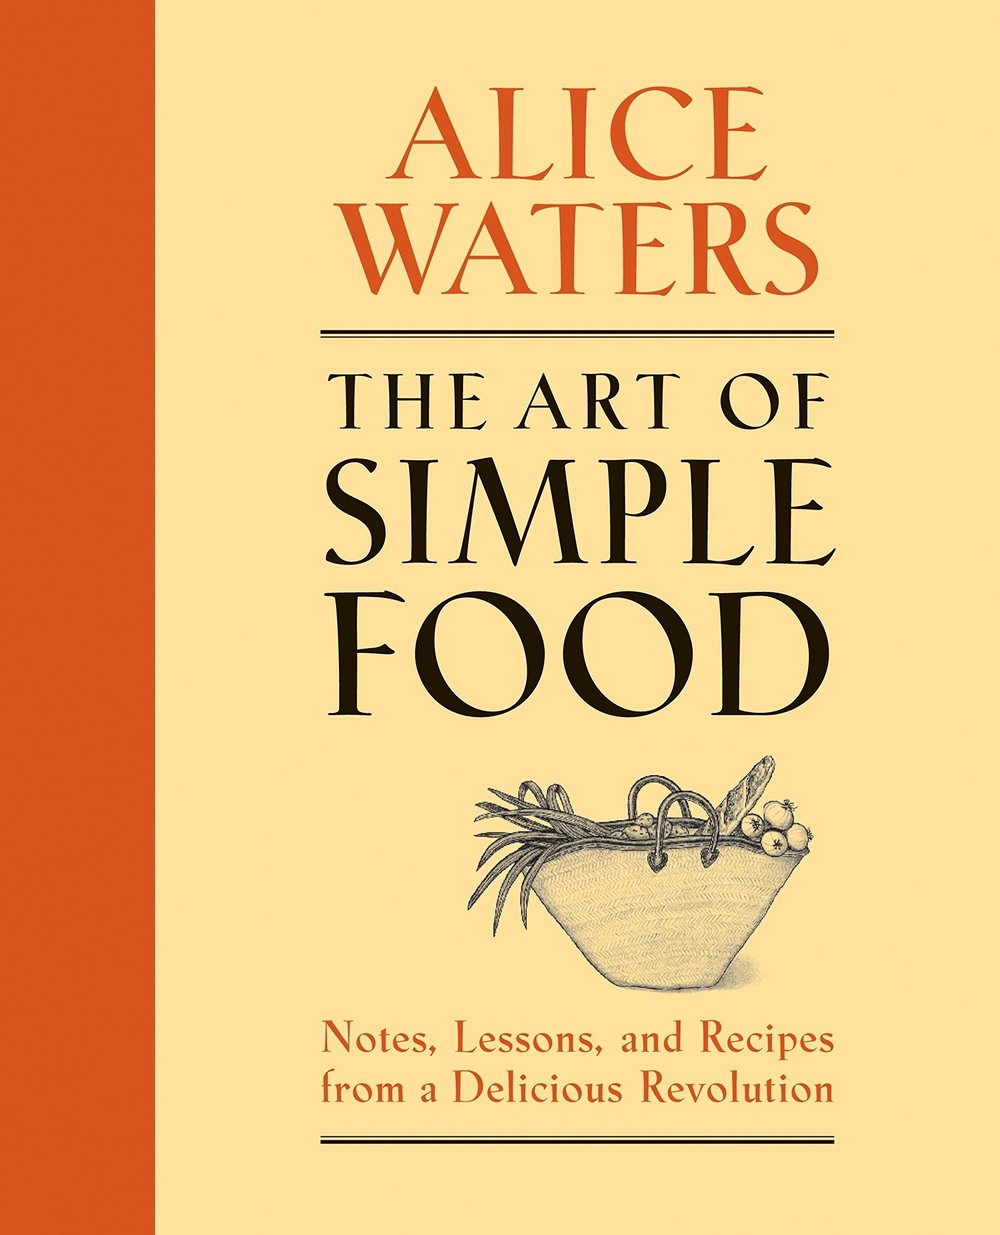 The Art of Simple Food by Alice Waters -